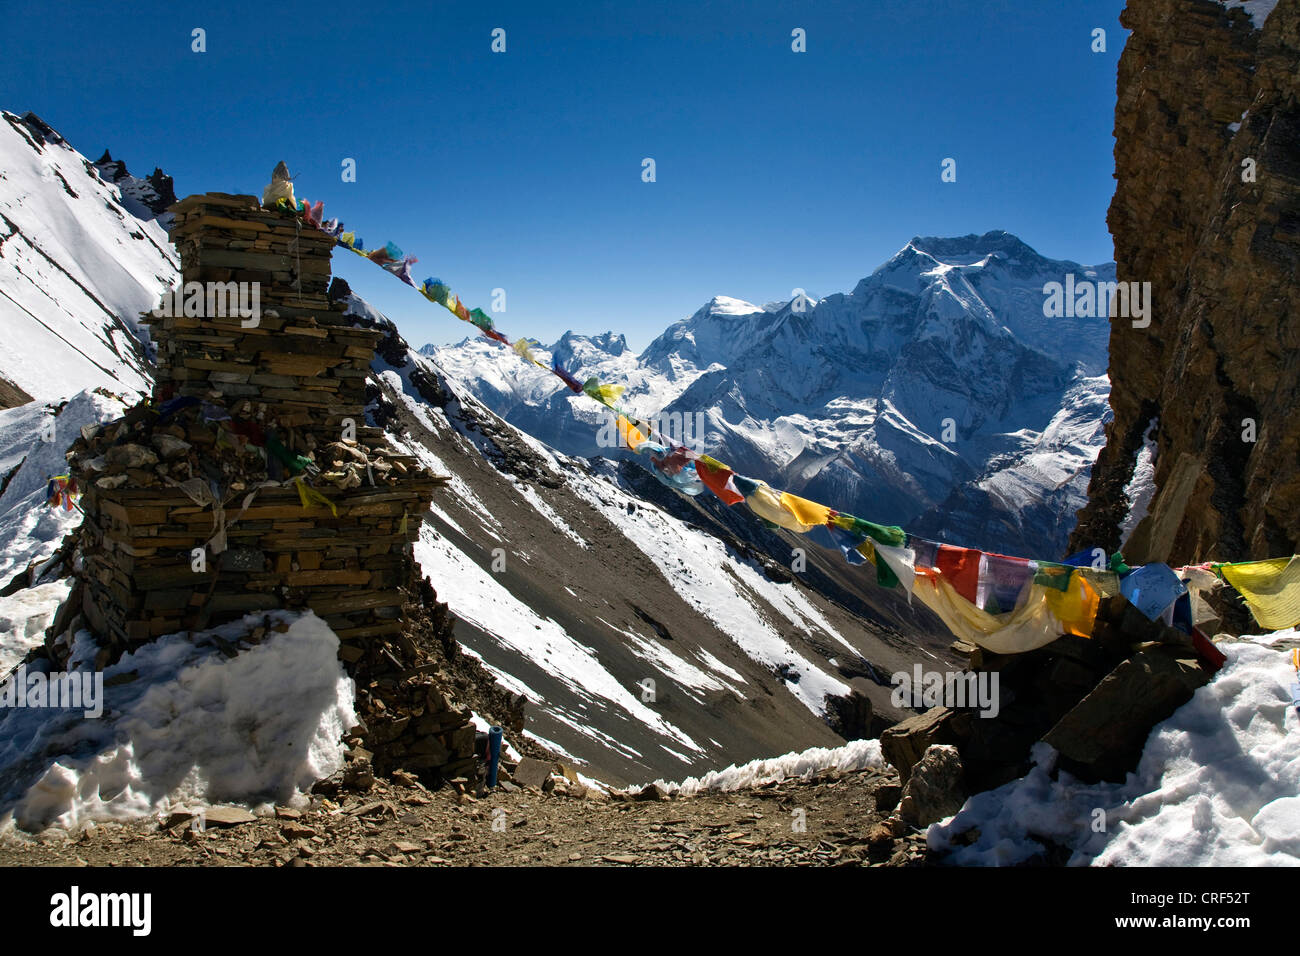 STONE CHORTEN and ANNAPURNA THREE at 7553 meters as seen from the KANG LA PASS on the NAR PHU TREK, Nepal, Annapurna - Stock Image